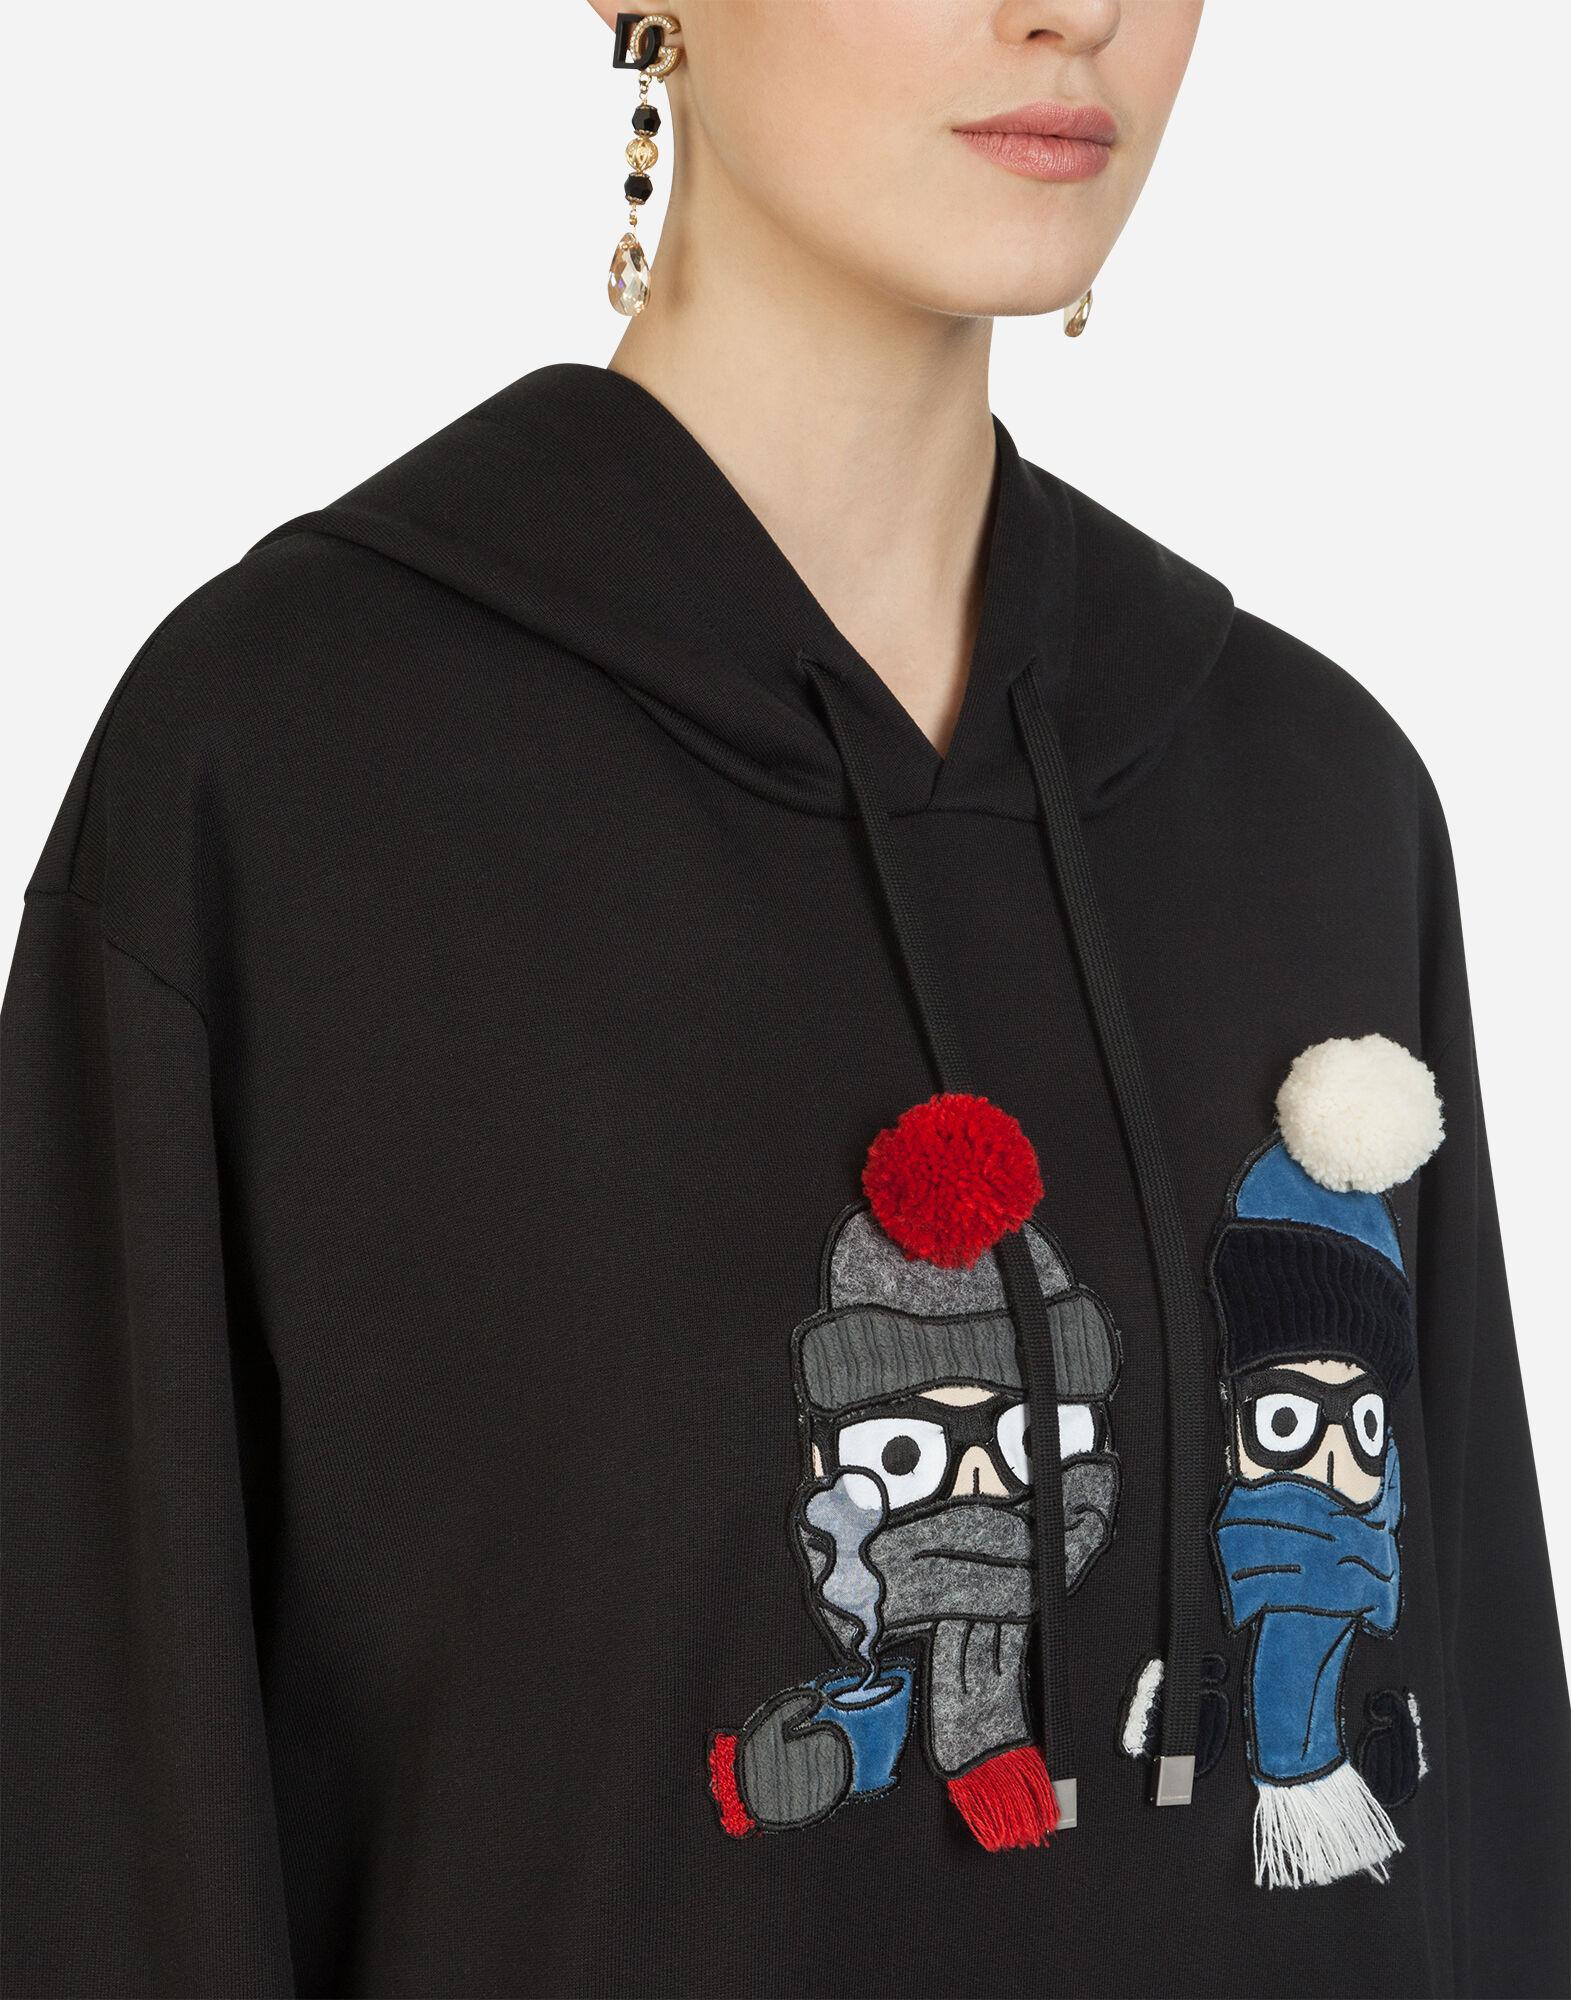 Hoodie with patches of the designers 2